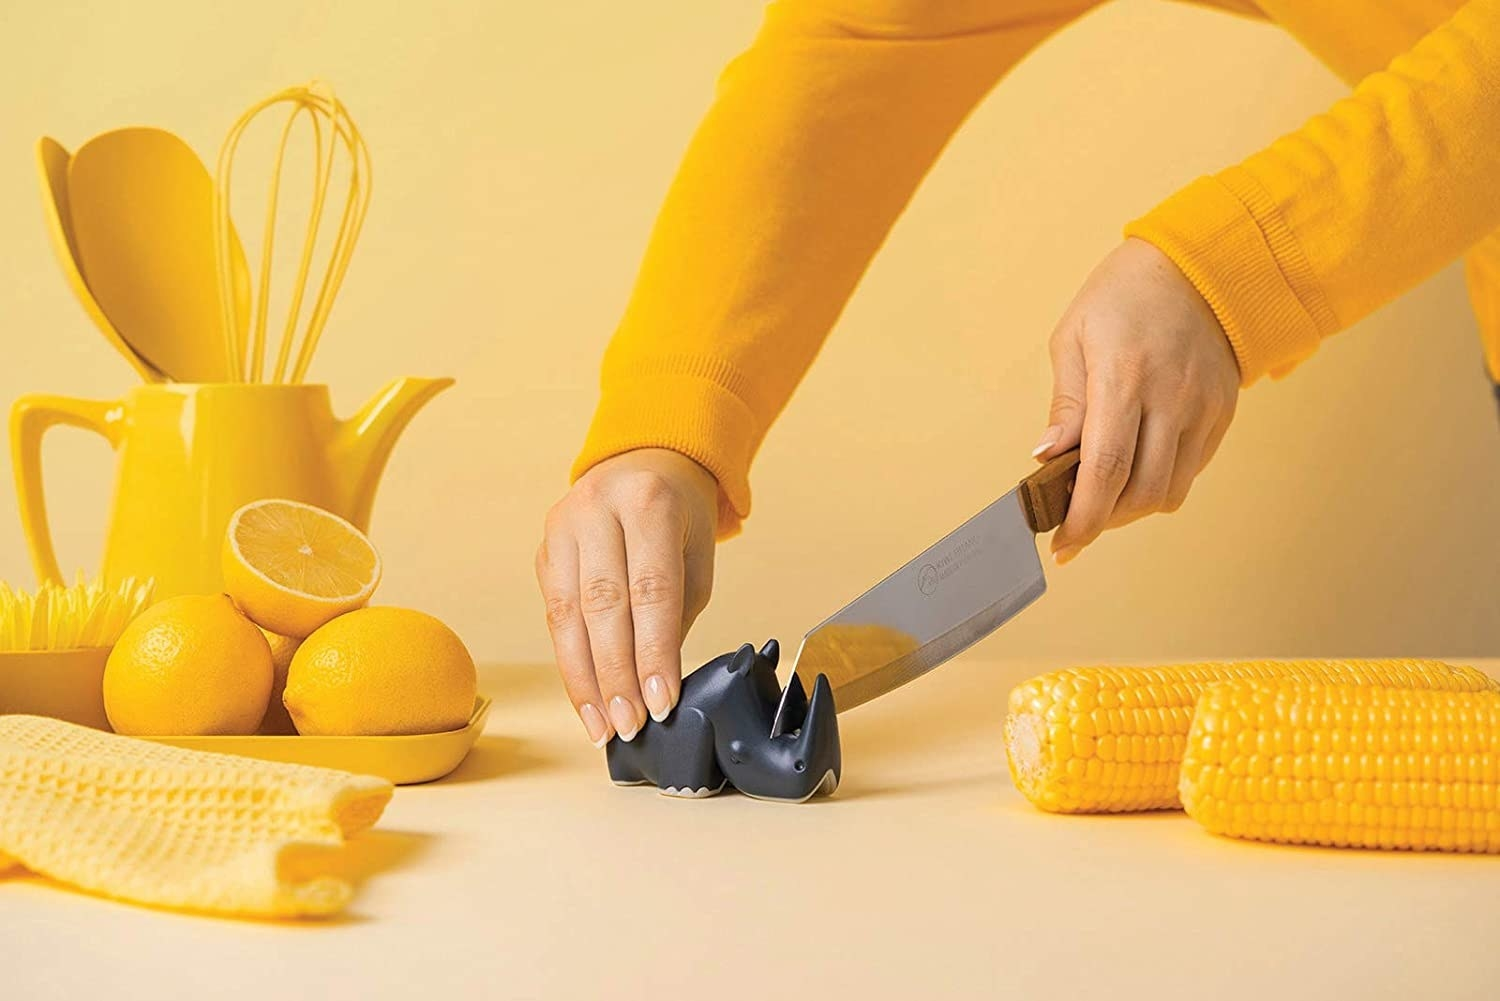 A person sharpens their knife on the rhino-shaped sharpener